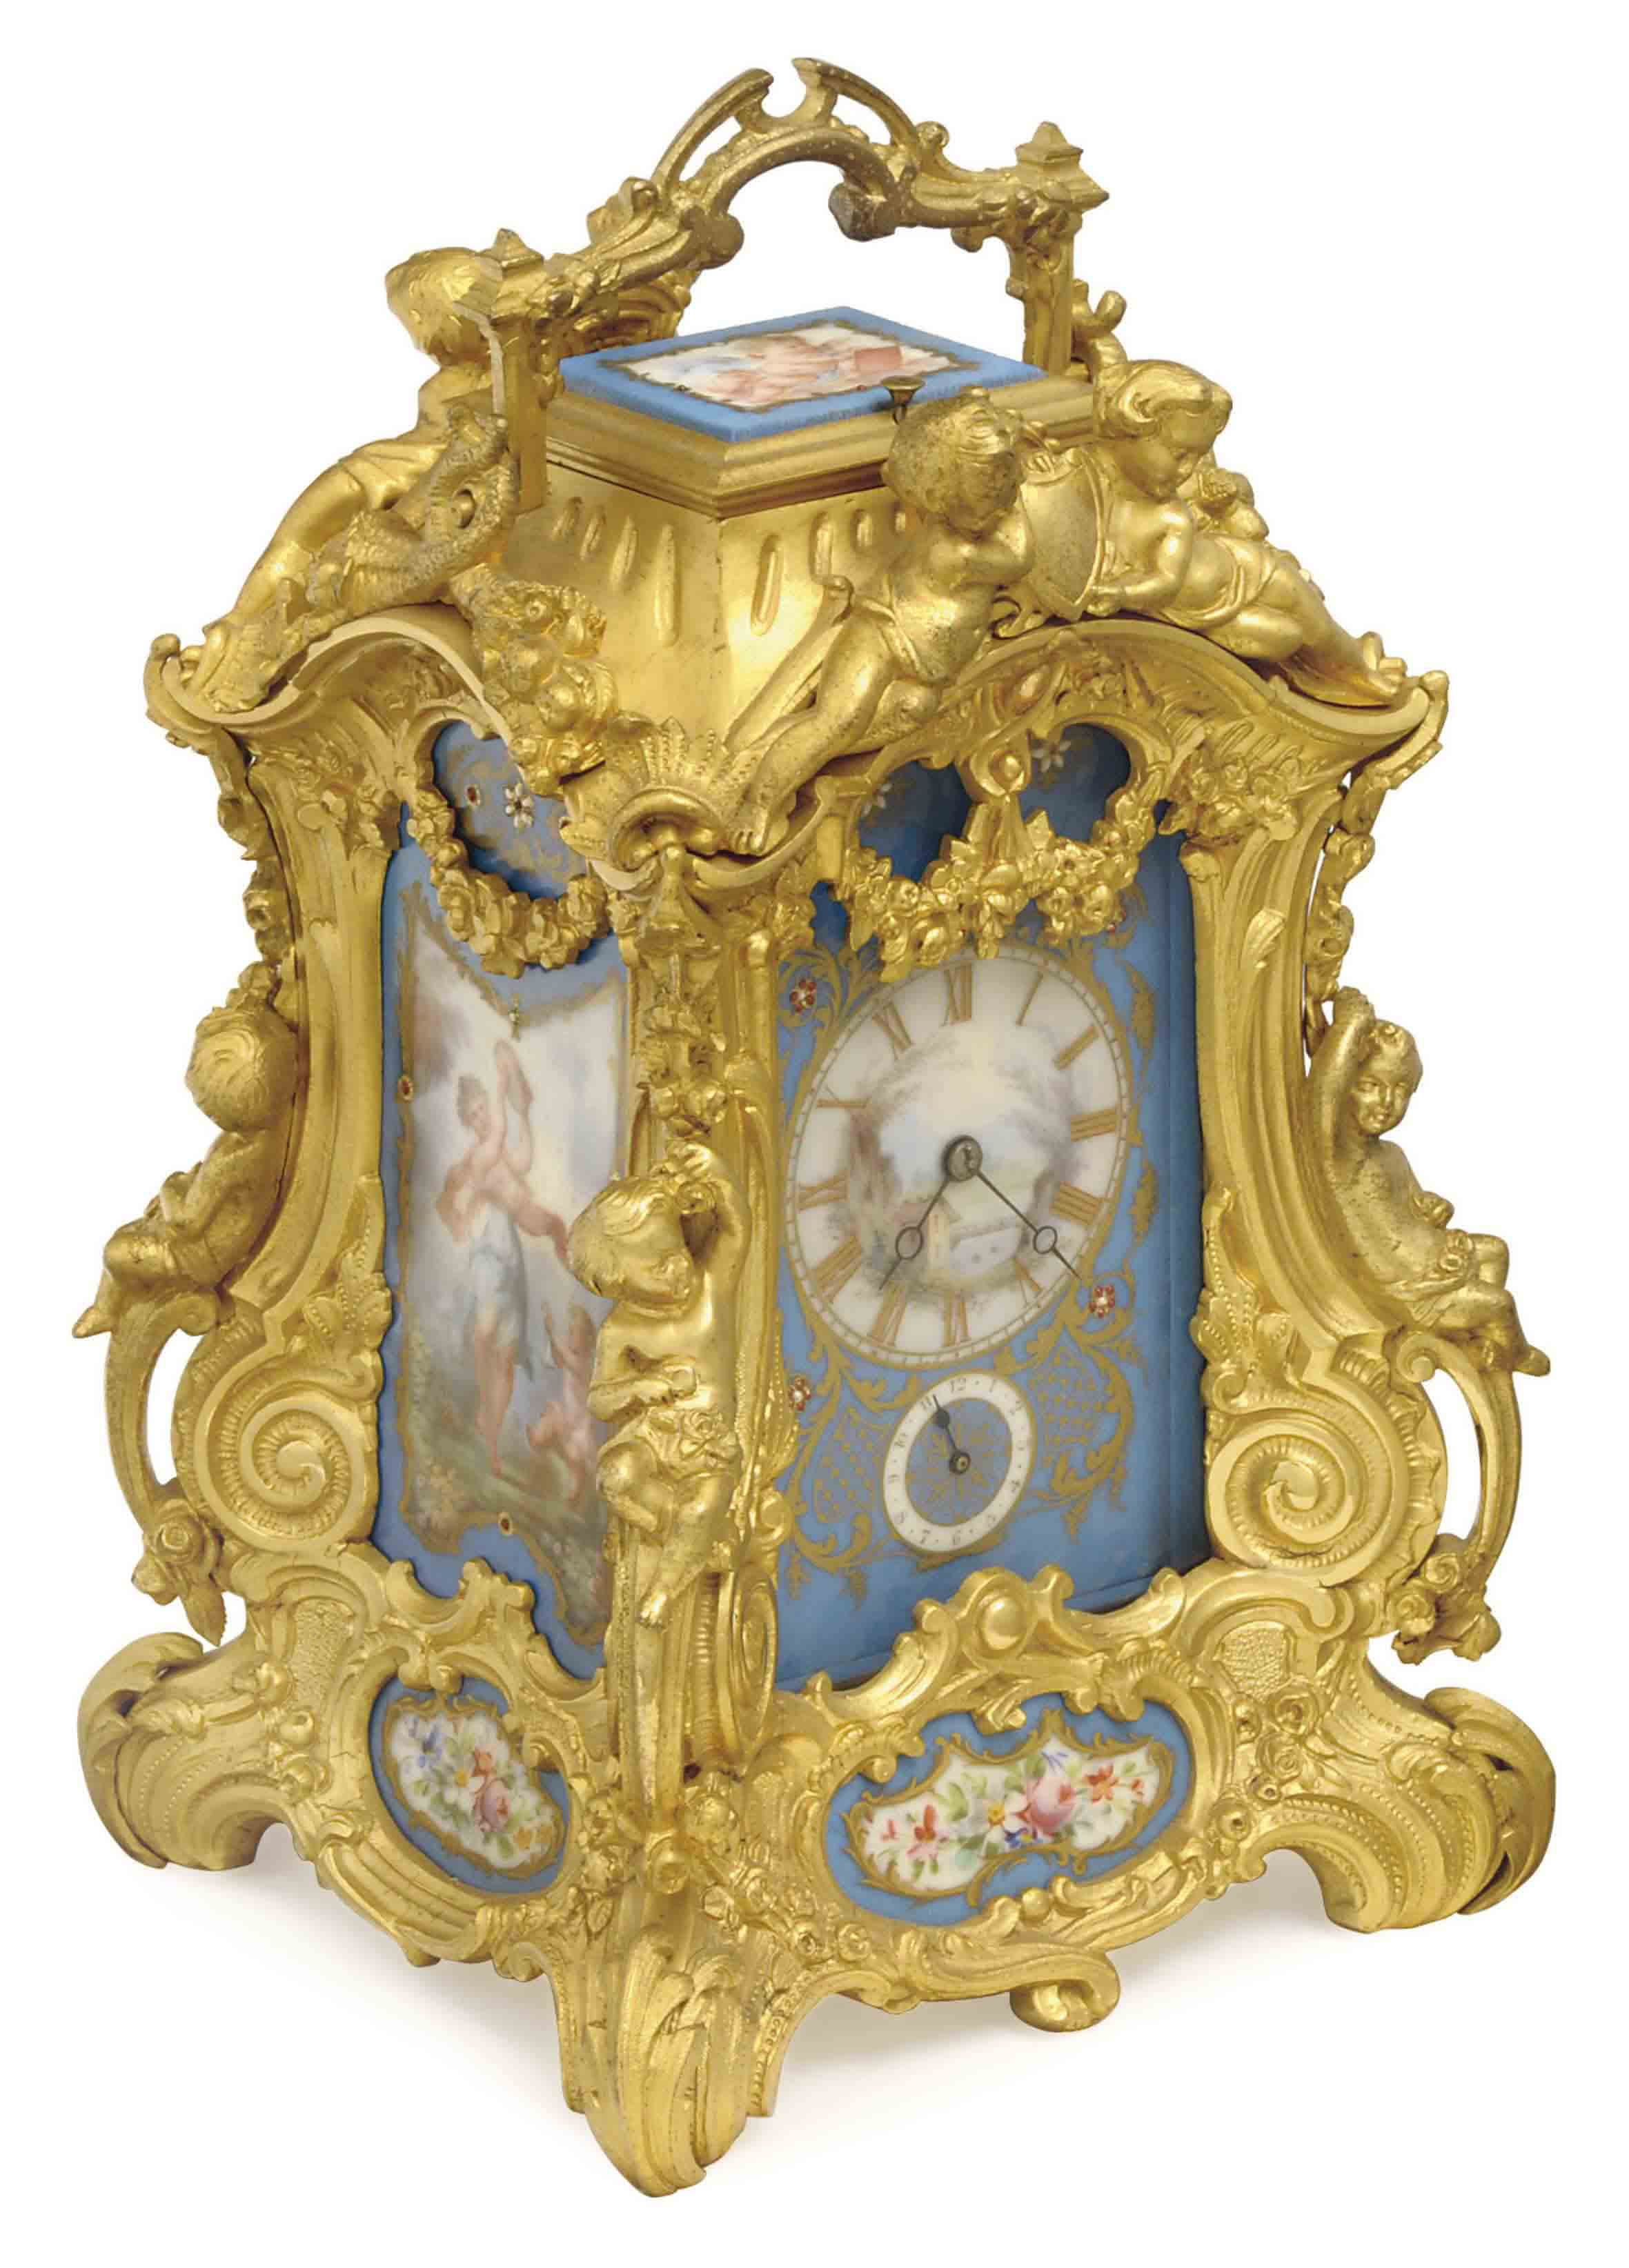 A FRENCH GILT-BRASS AND SEVRES-STYLE PORCELAIN STRIKING CARRIAGE CLOCK,